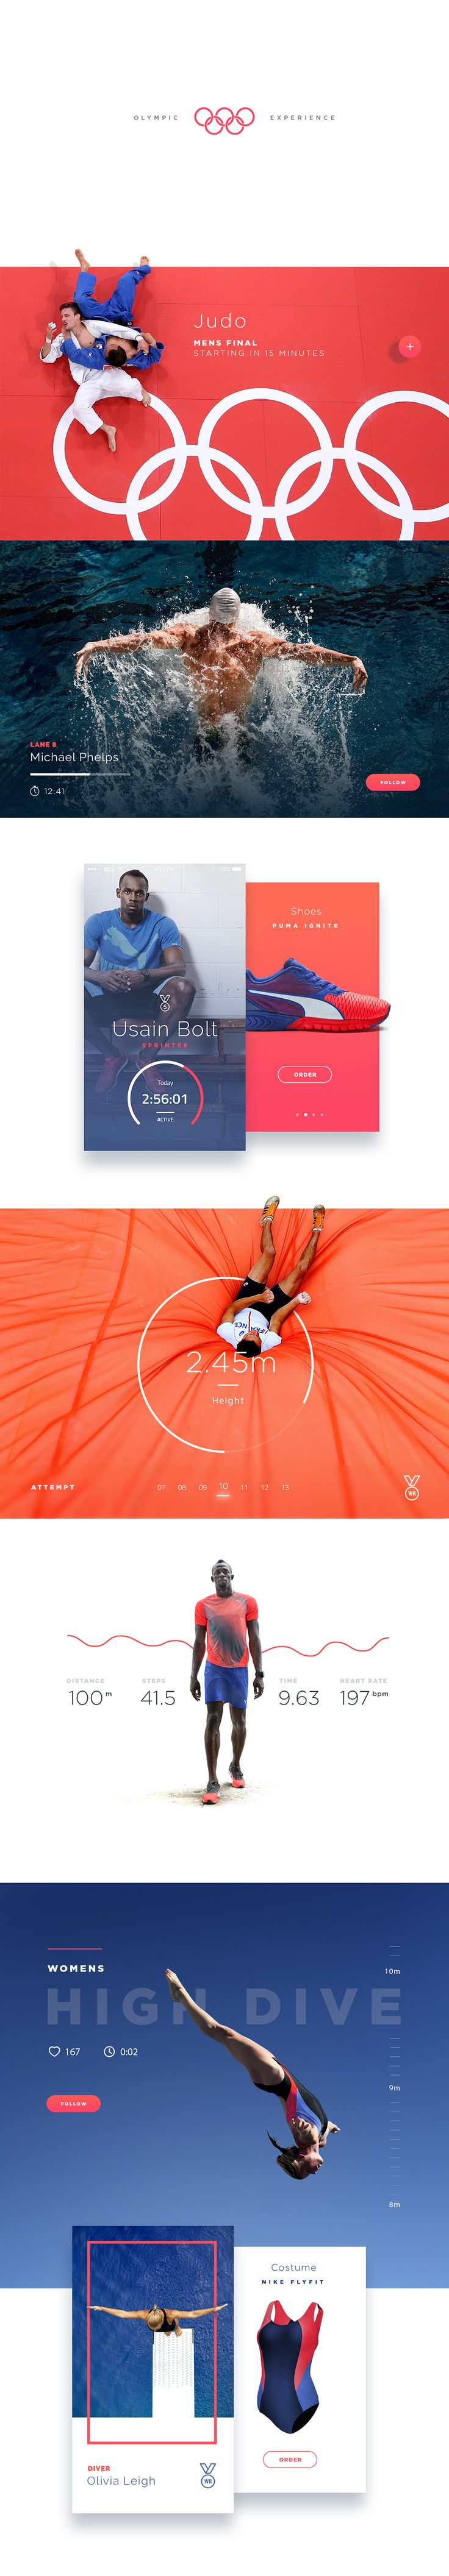 The Olympic data allows for a much richer experience. The UX is designed to give the viewer an unparalleled Olympic experience through a wealth of beautifully curated content.